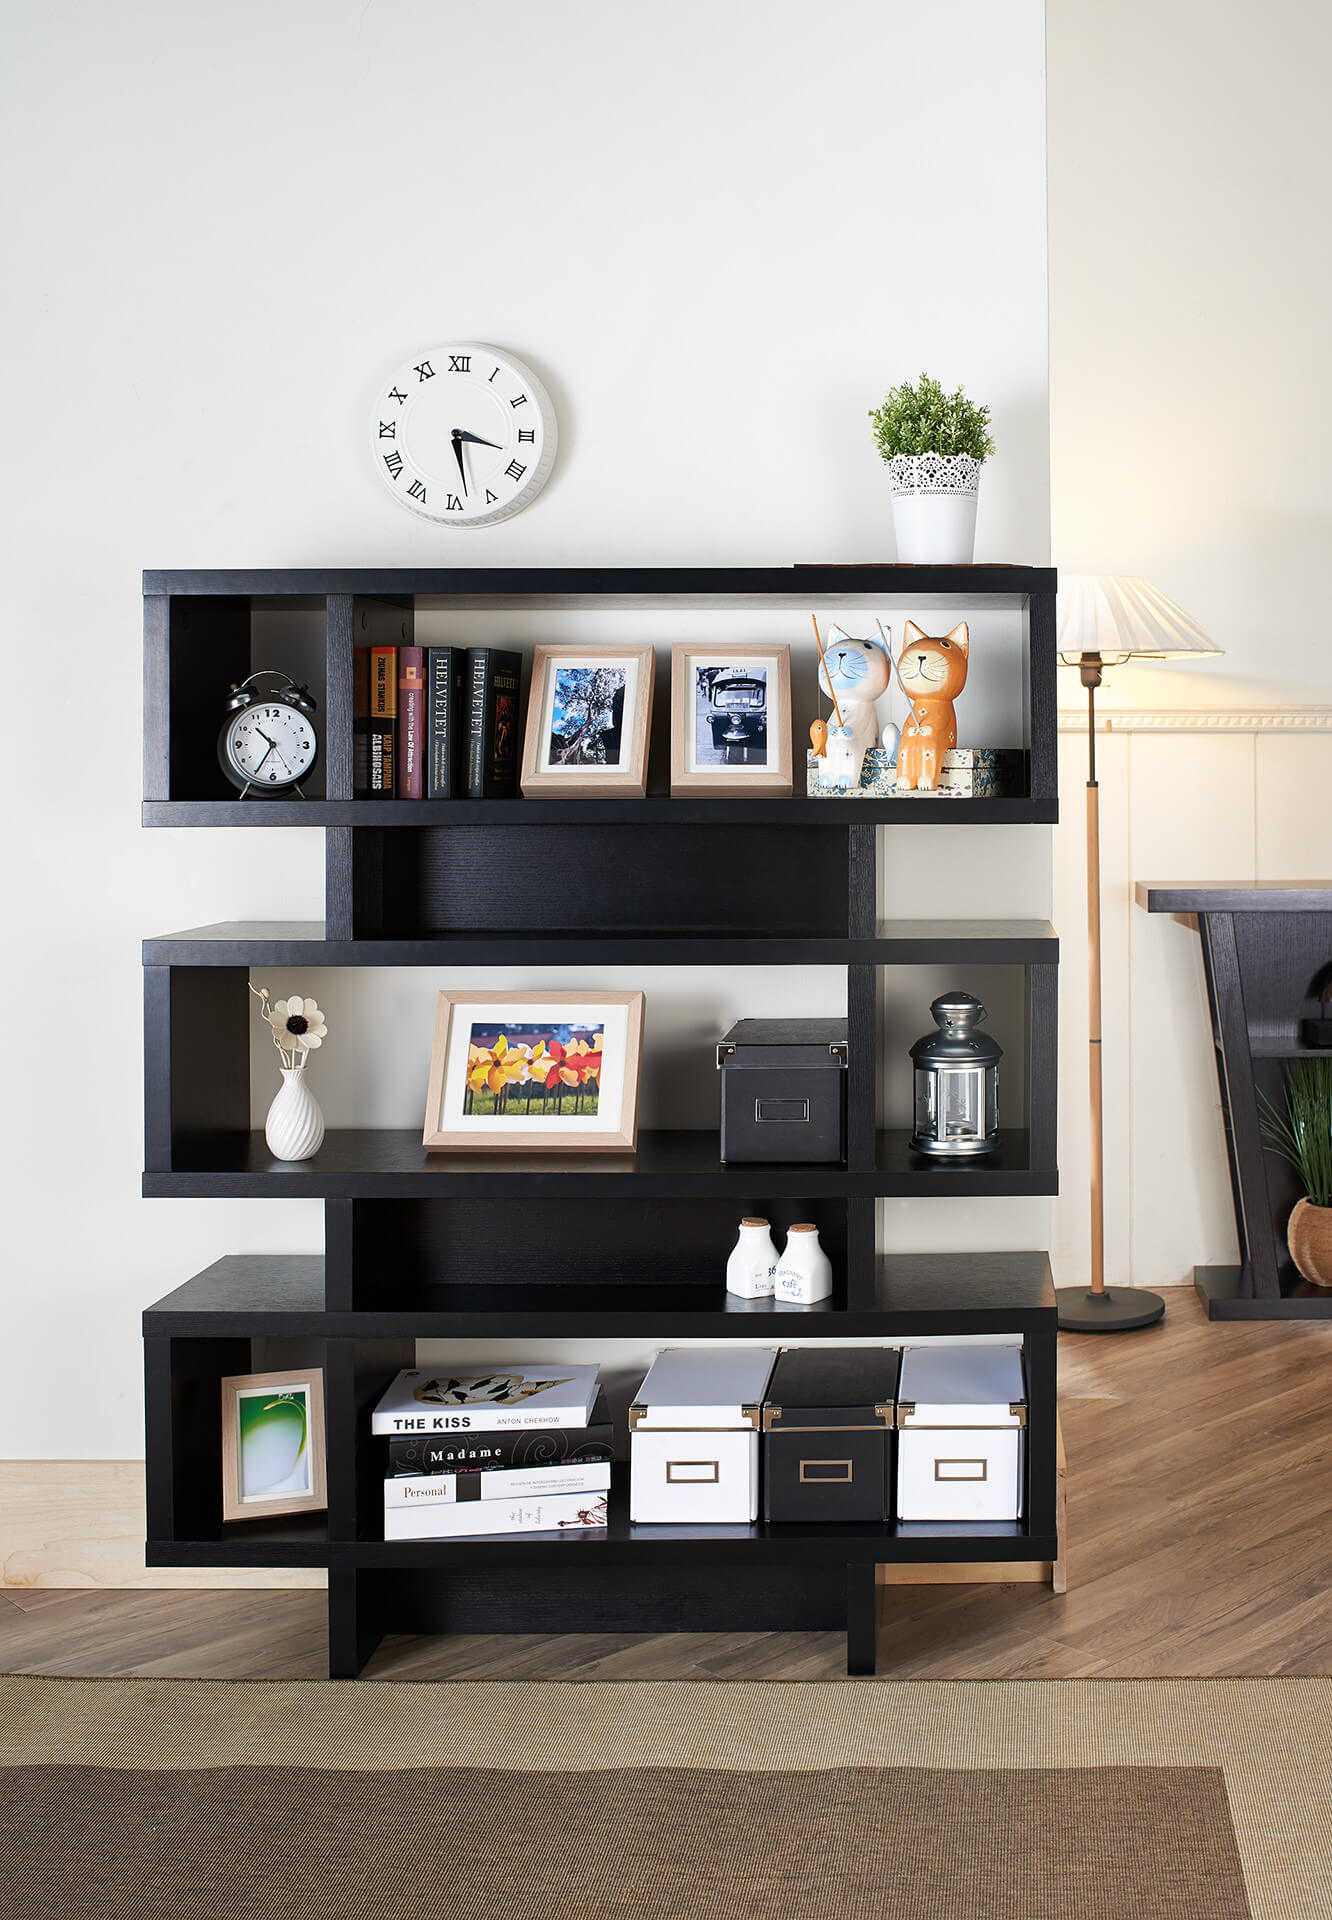 9 cubes are achieved with this shelf using a series of 3 cubes stacked on top of one another. Each section includes a footer section topped with a narrow cube and wide shelving section.